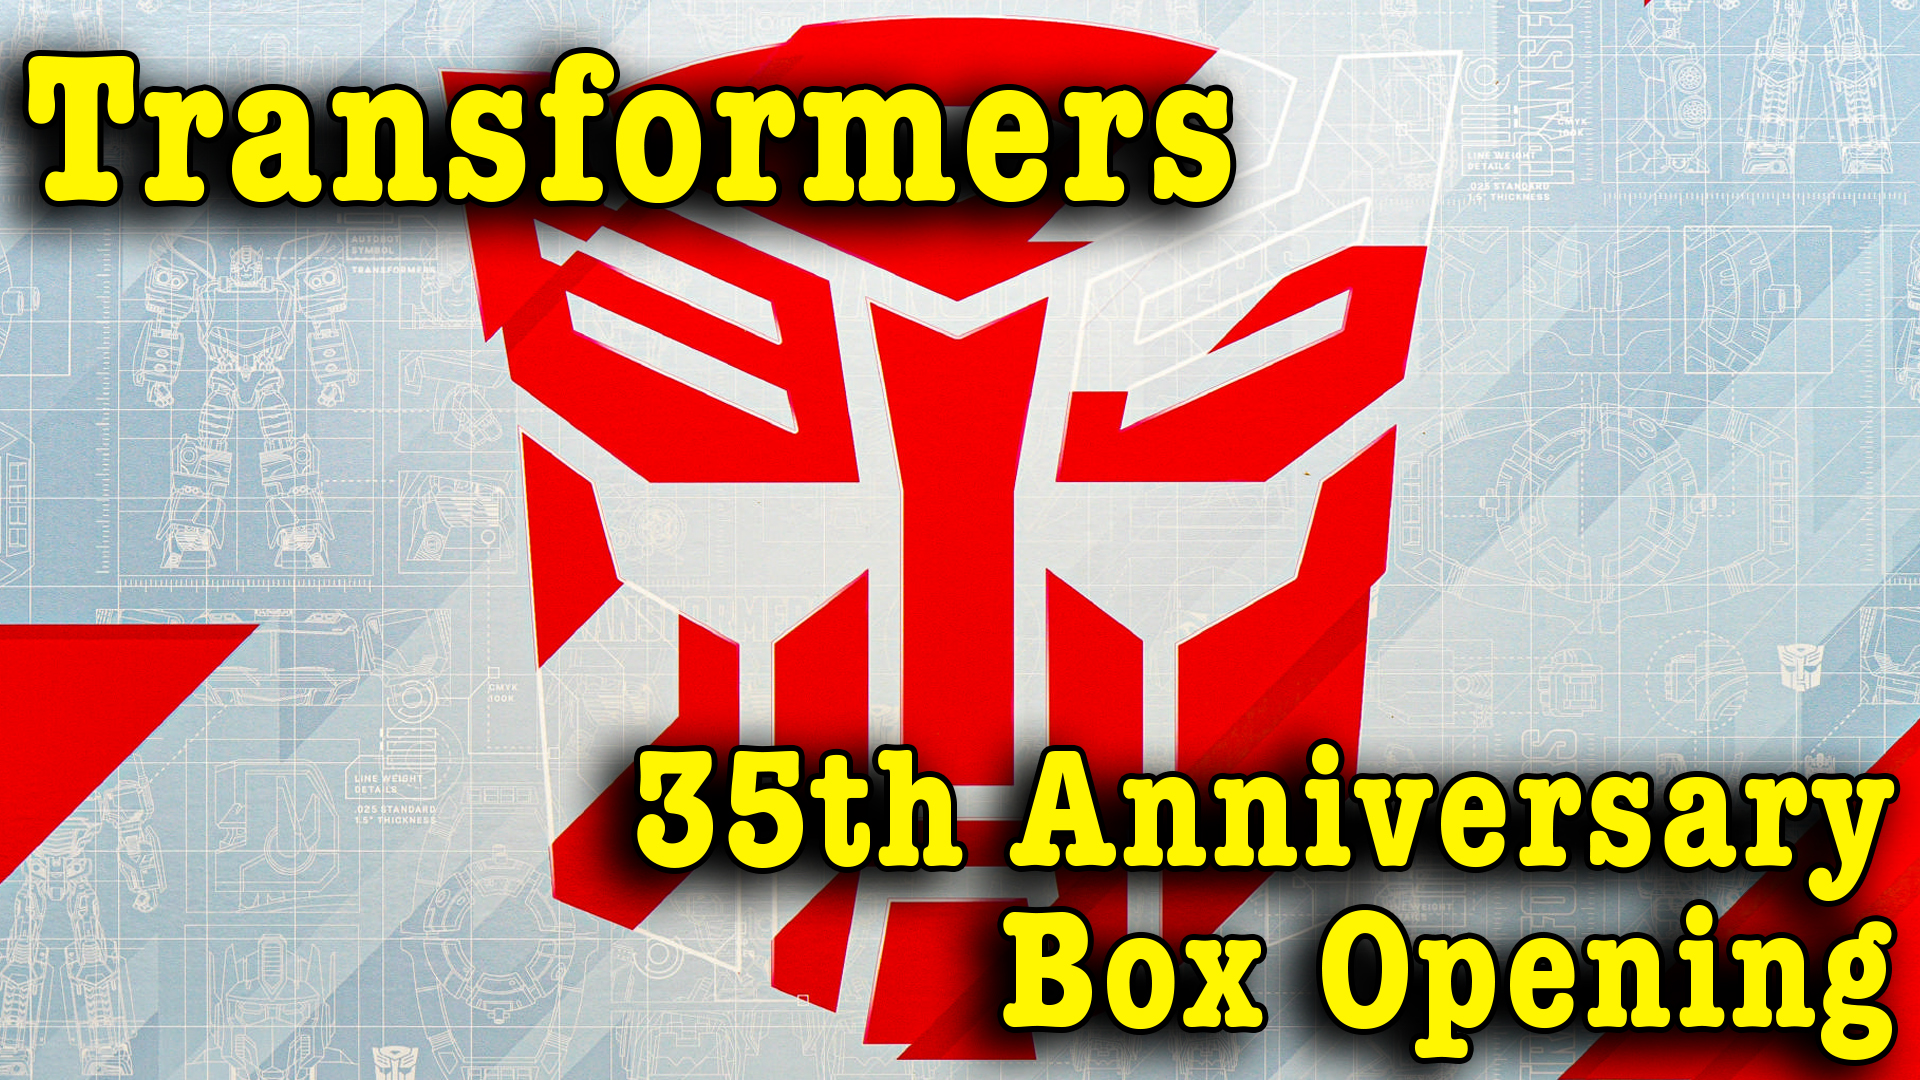 Transformers 35th Anniversary Box Opening